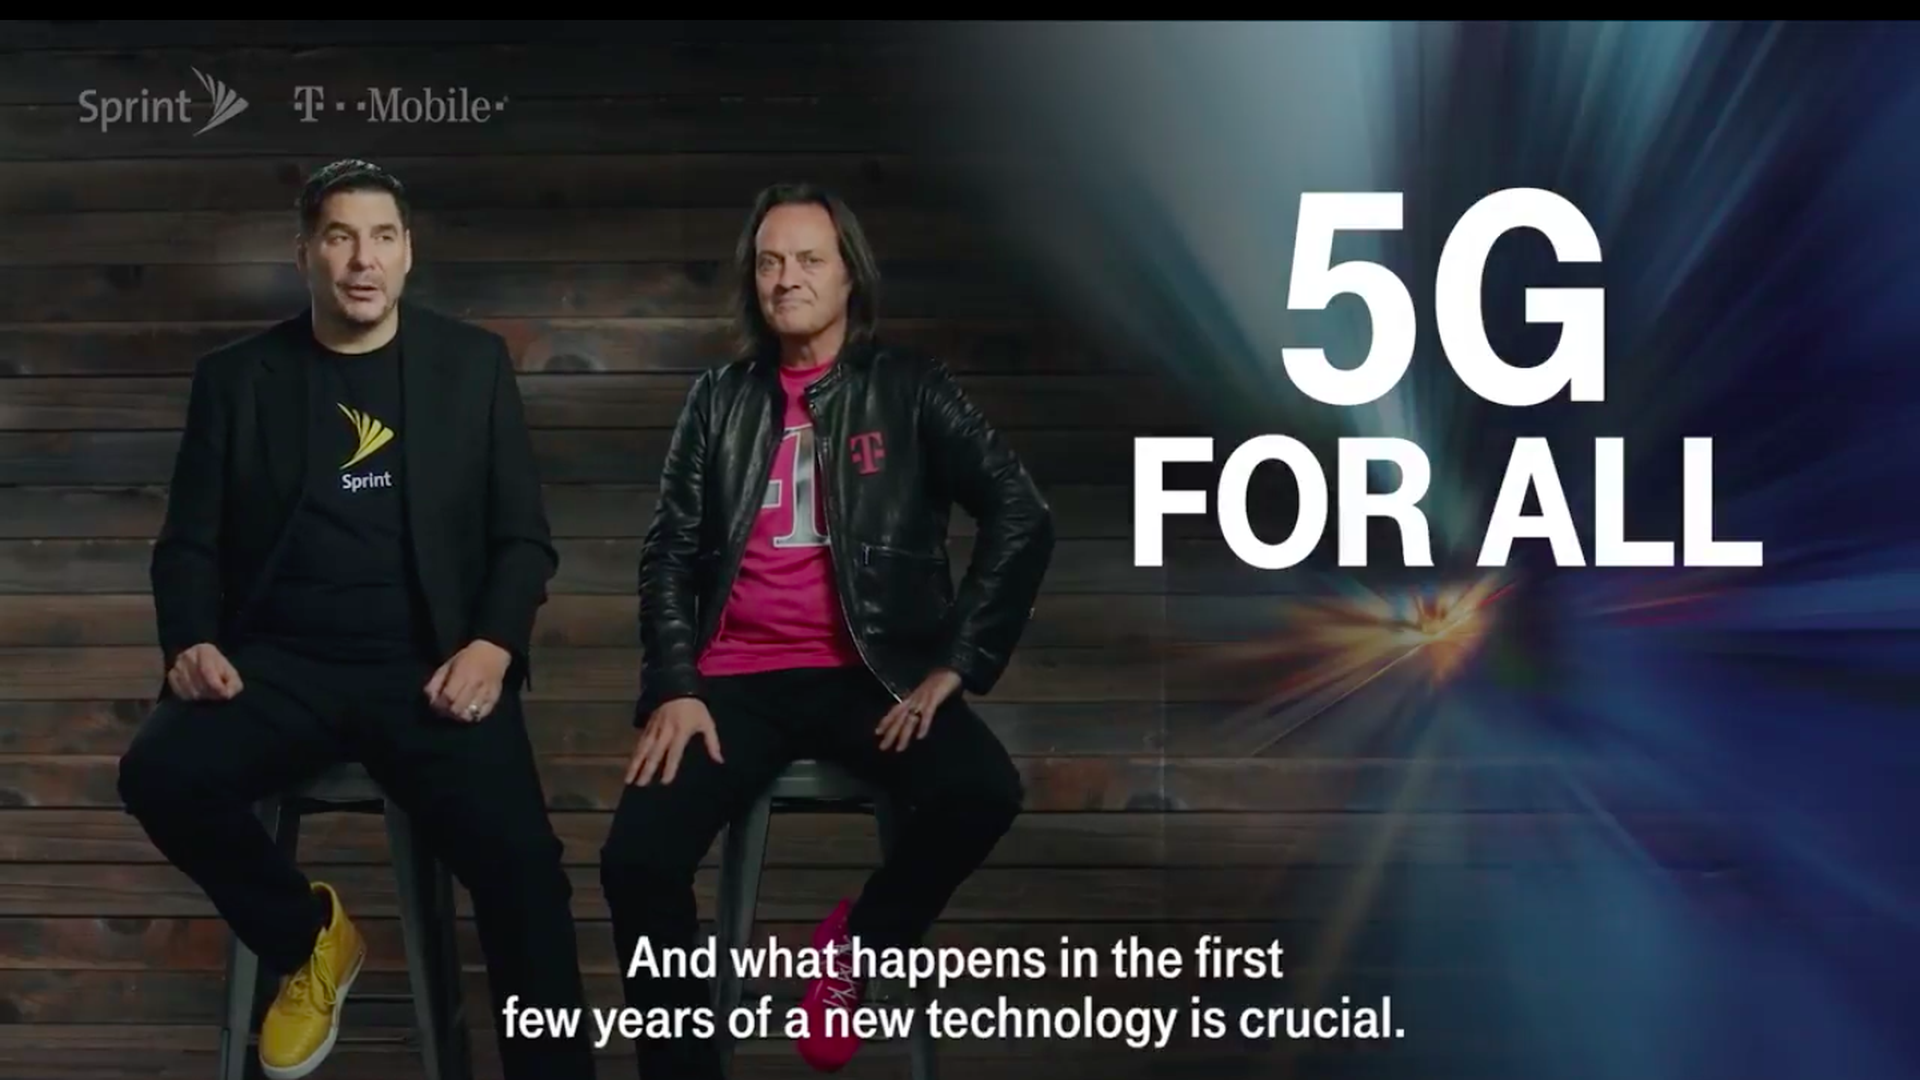 Sprint and T-Mobile CEOs sit on chairs next to a big graphic that says 5G for all